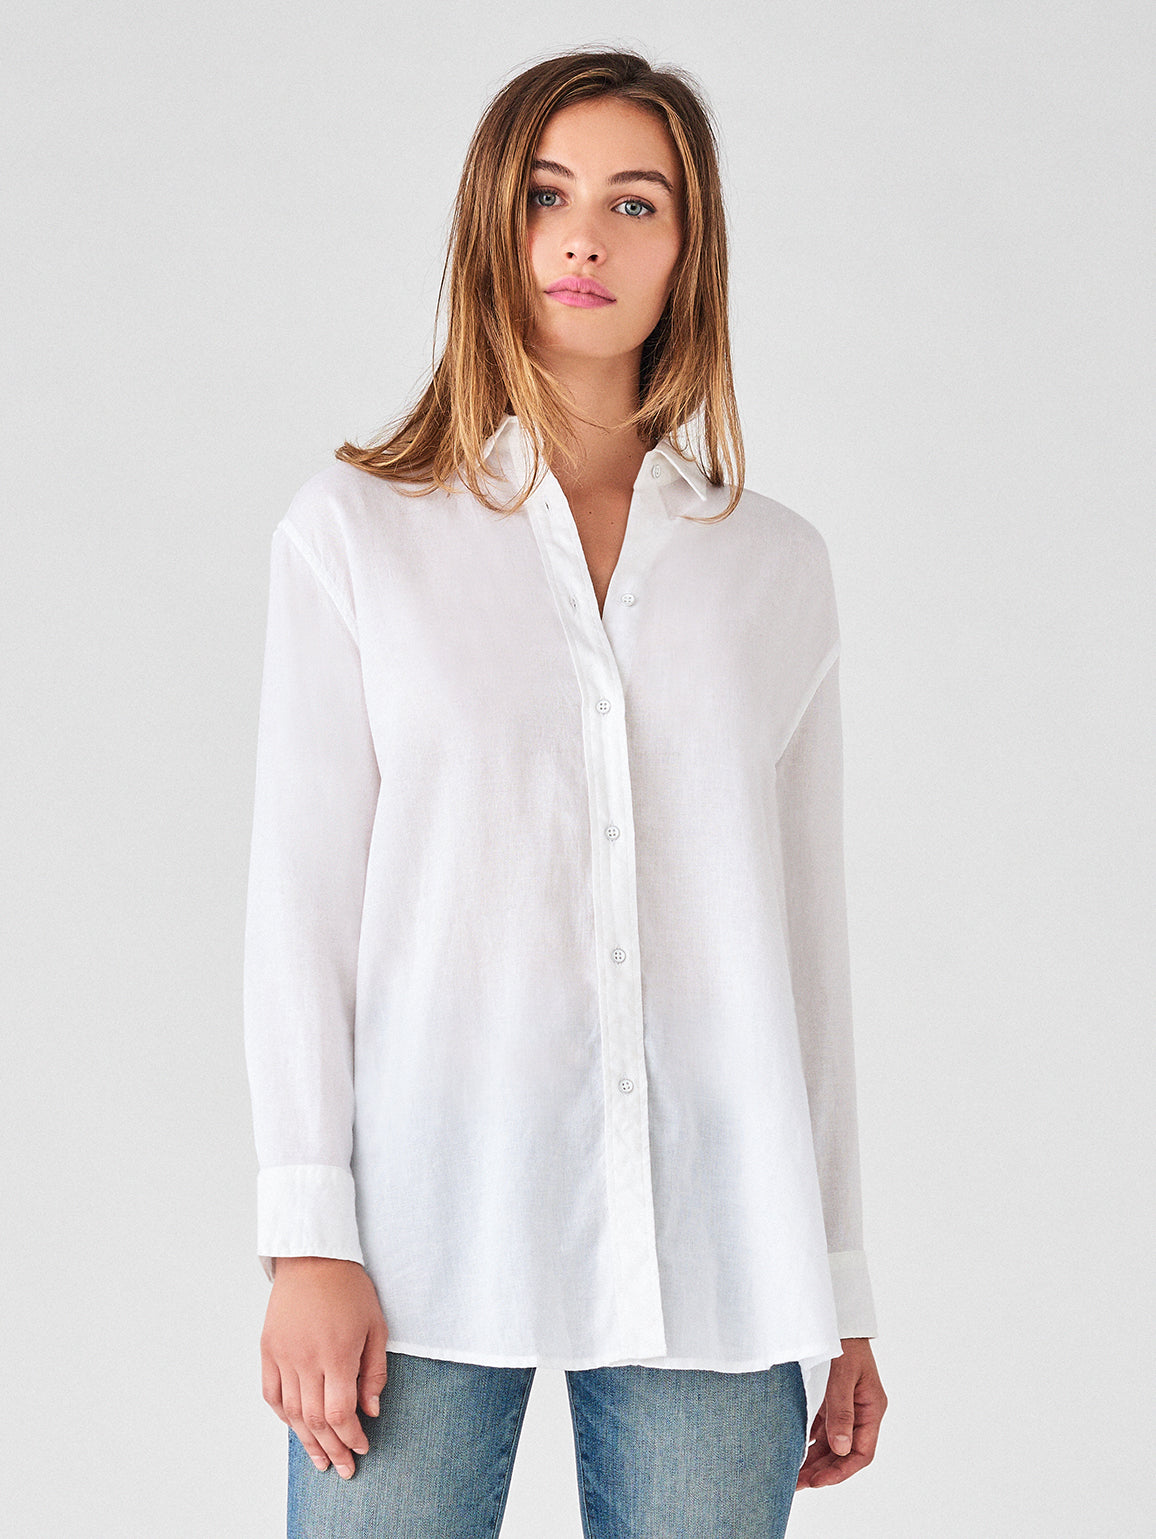 Metropolitan Ave Top | White